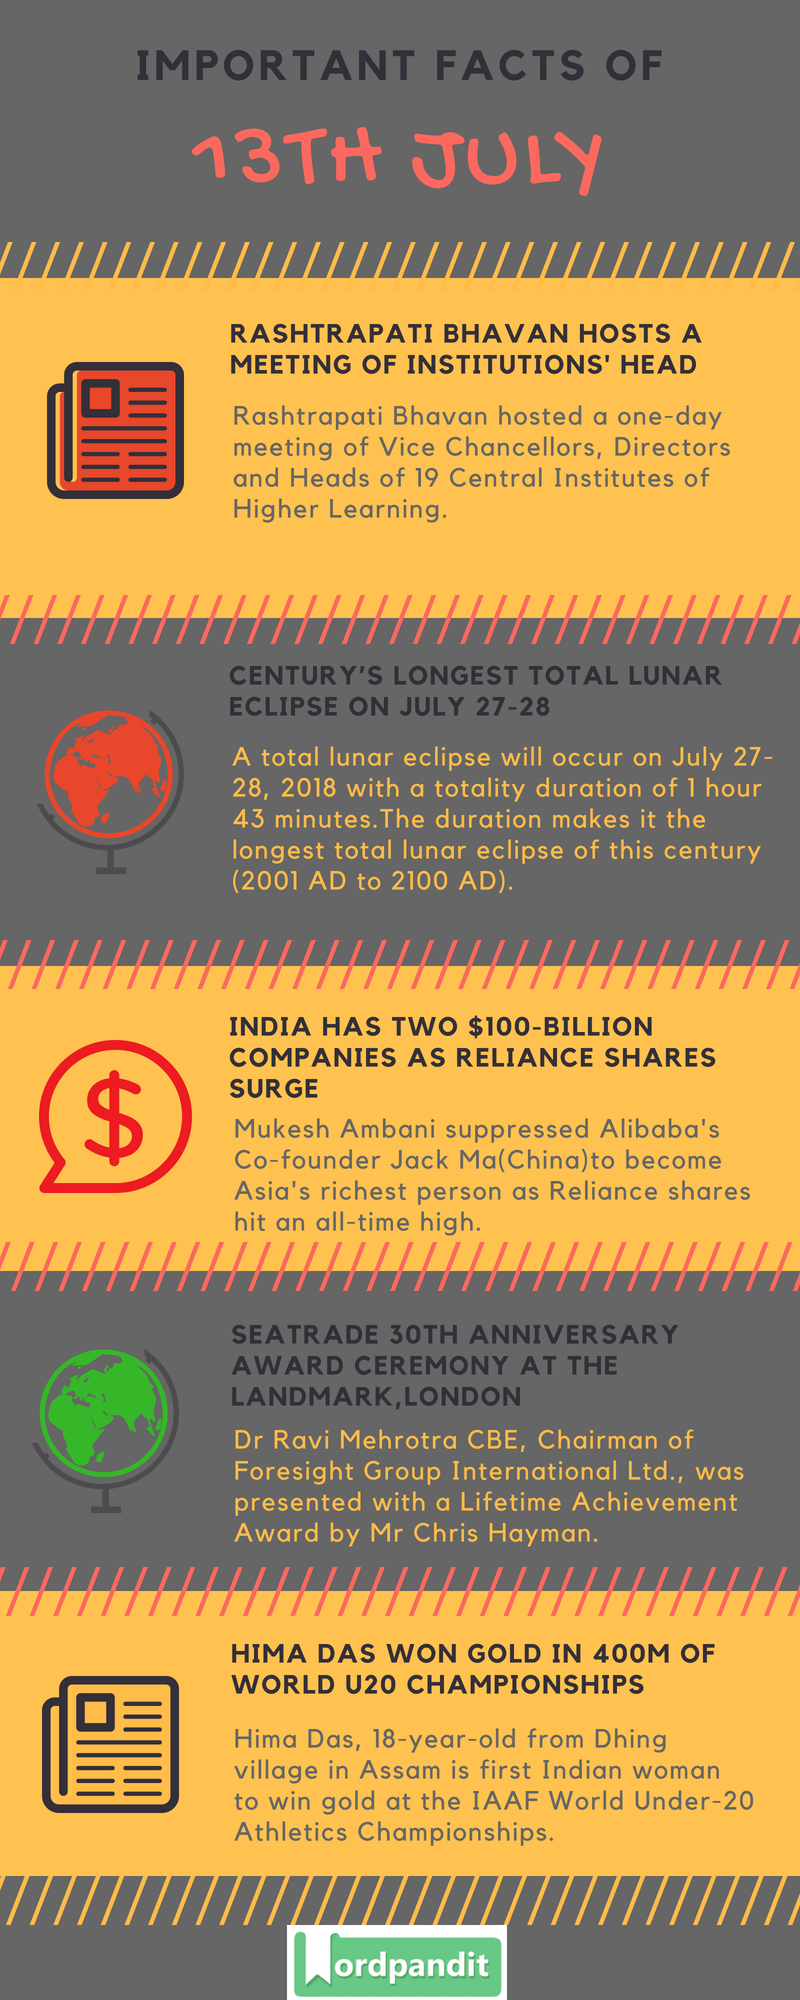 Daily Current Affairs 13 July 2018 Current Affairs Quiz July 13 2018 Current Affairs Infographic